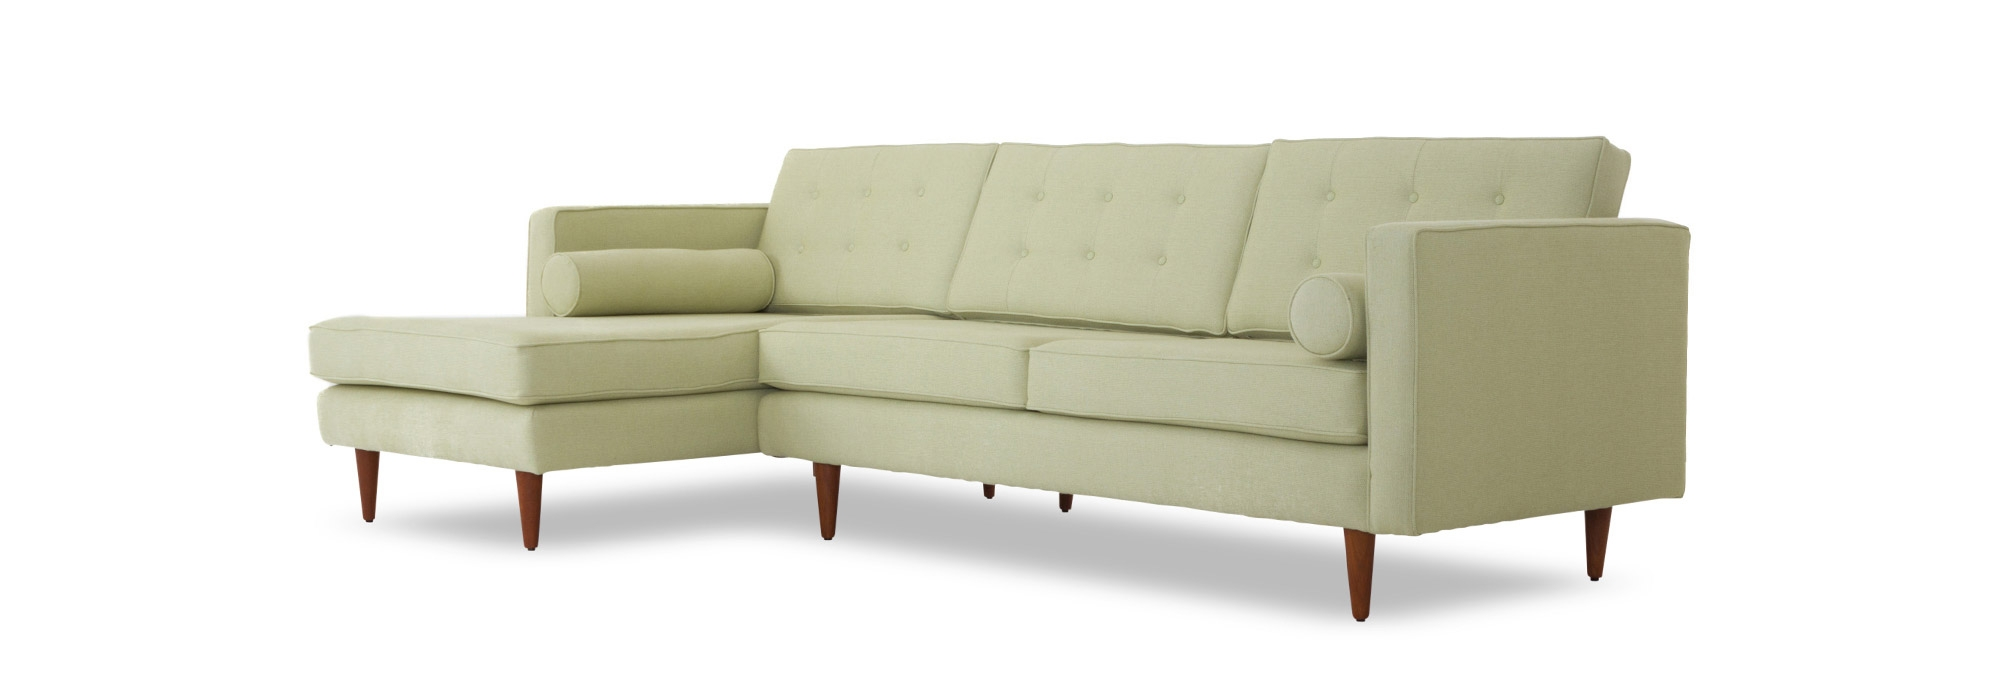 Braxton Sectional Joybird With Regard To Braxton Sectional Sofa (Image 9 of 15)